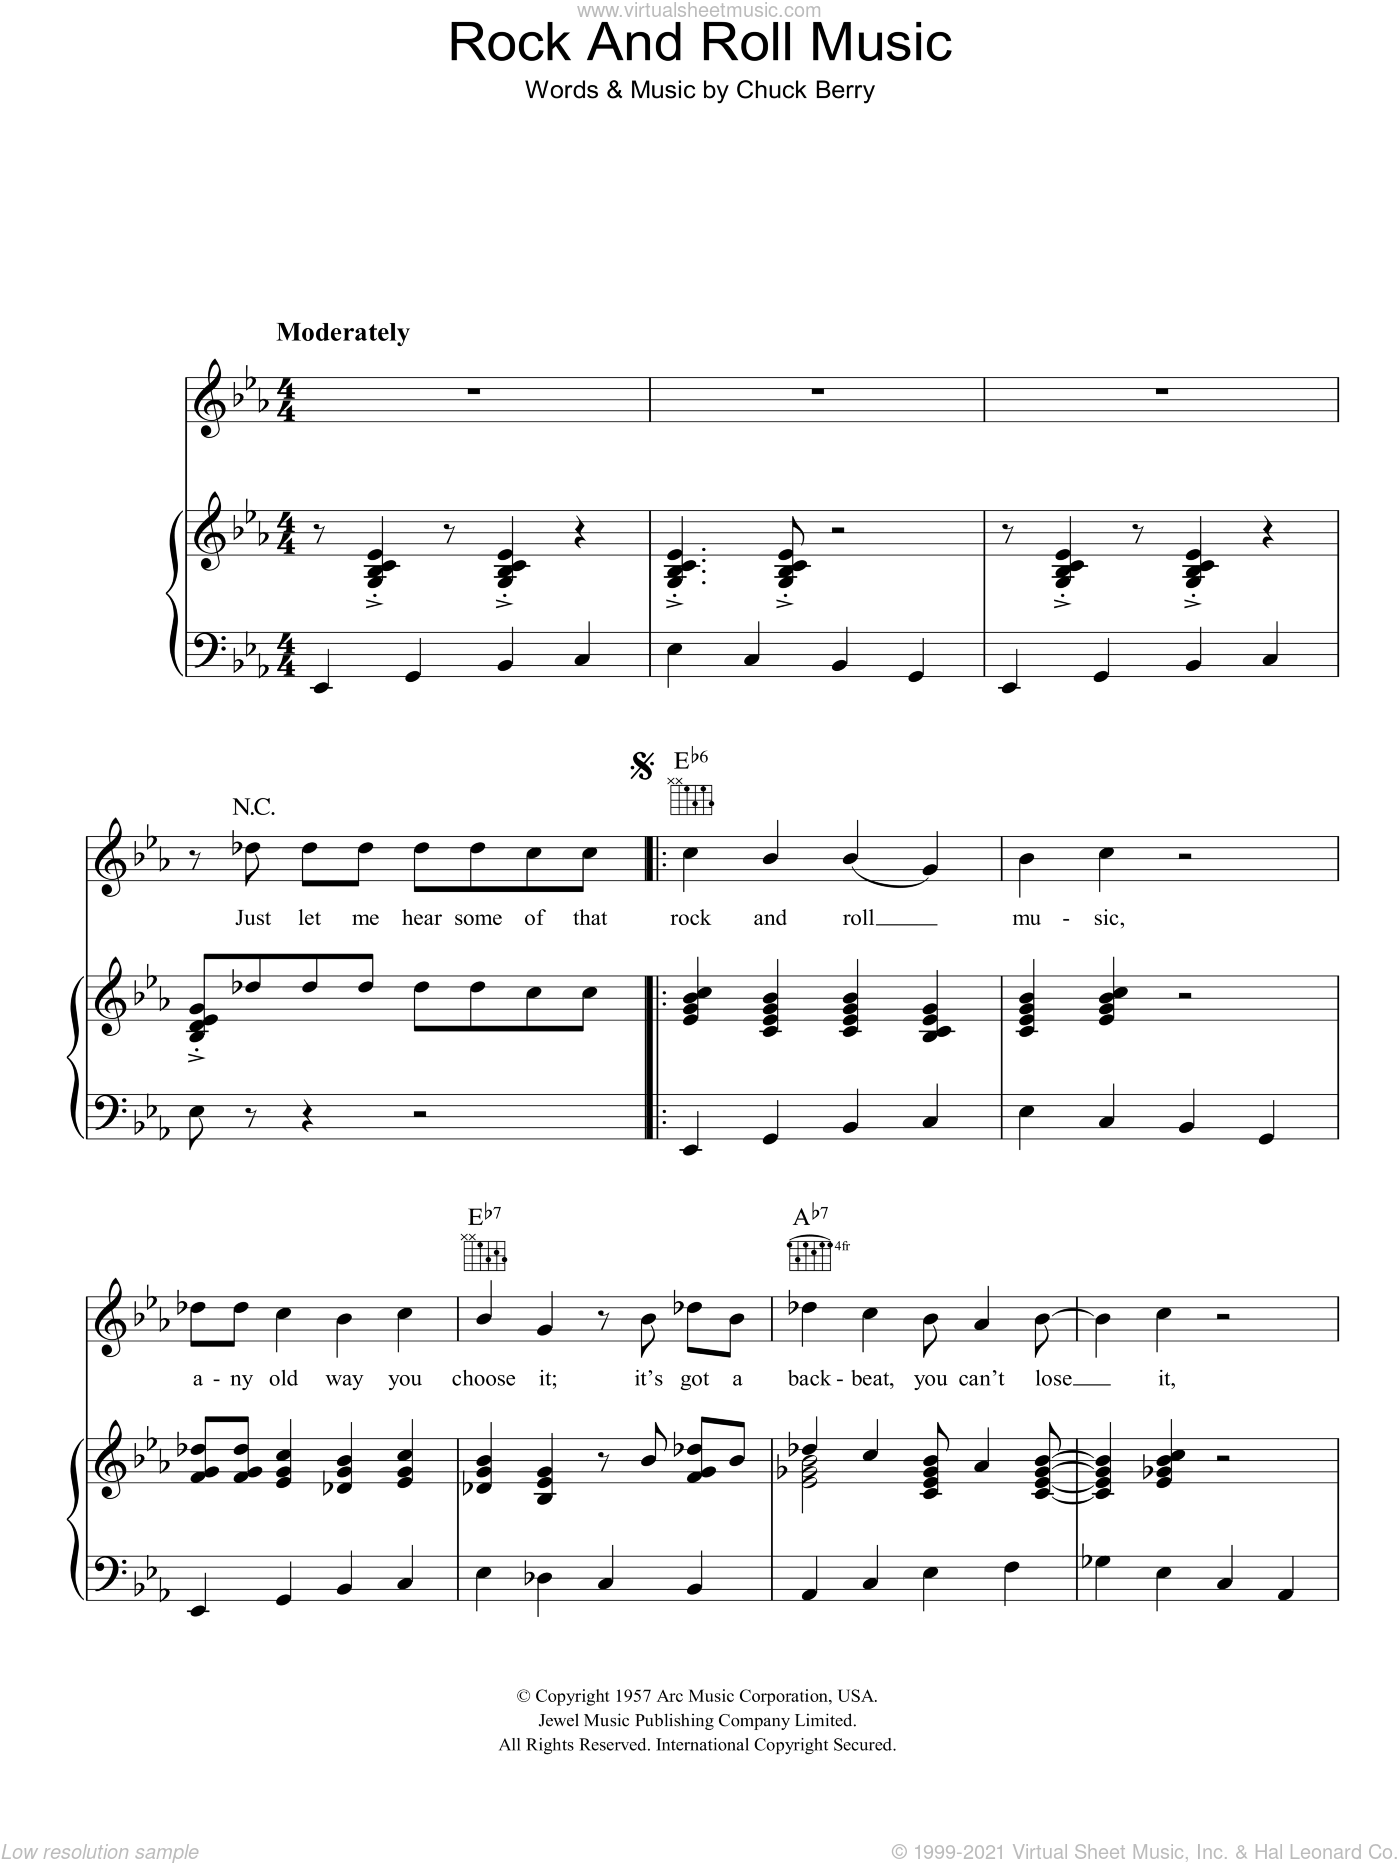 Rock And Roll Music sheet music for voice, piano or guitar by Chuck Berry. Score Image Preview.